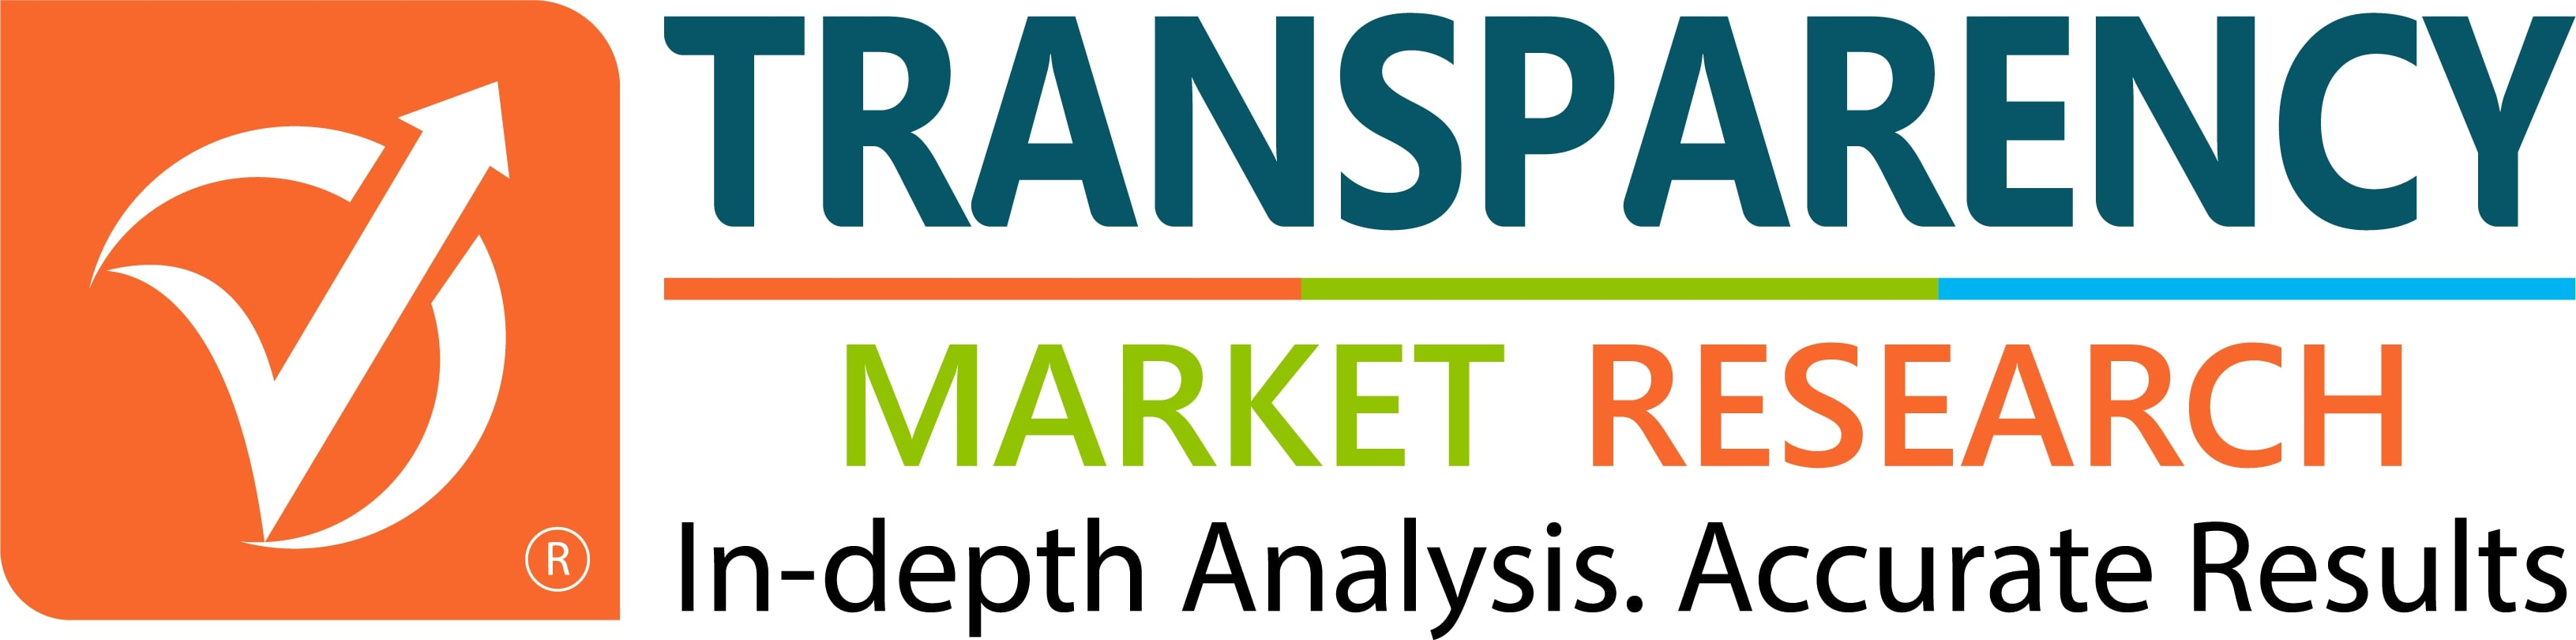 Cardiac Biomarker Diagnostic Test Kits Market to Witness a Growth Rate of 5.2% During 2019 - 2027